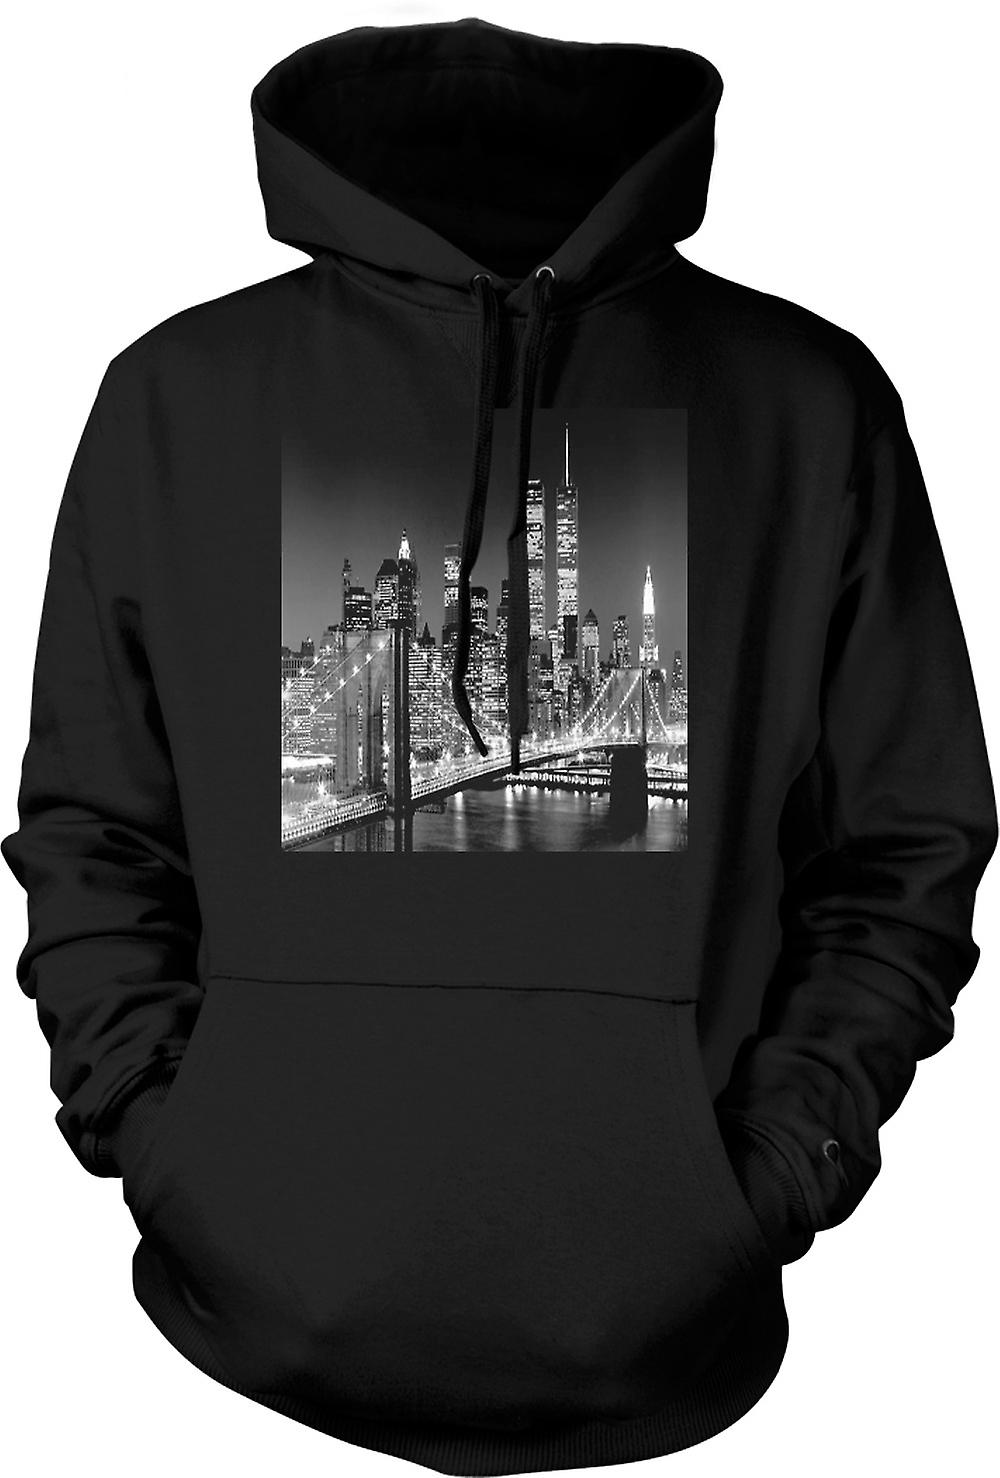 Tours jumelles de mens Hoodie - New York Sky Line-